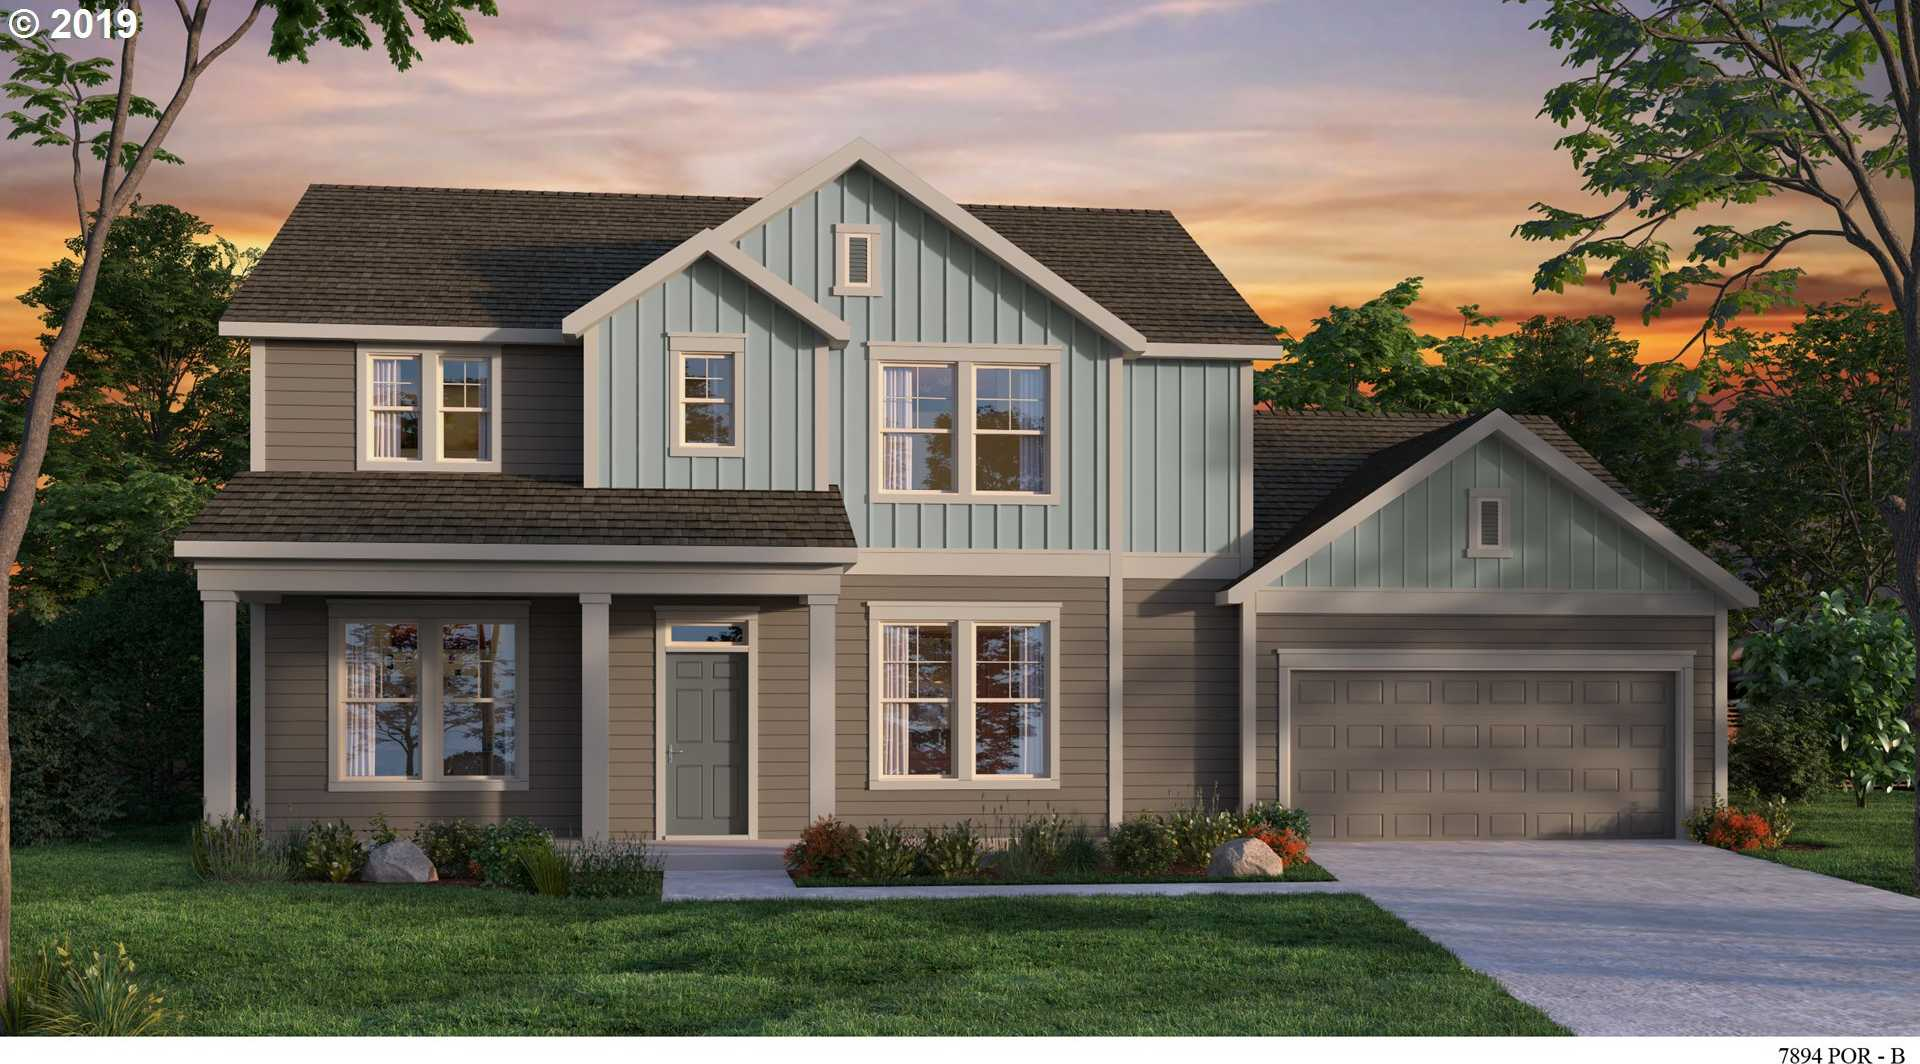 $748,420 - 5Br/3Ba -  for Sale in Summerbrook,lot 5, Tigard